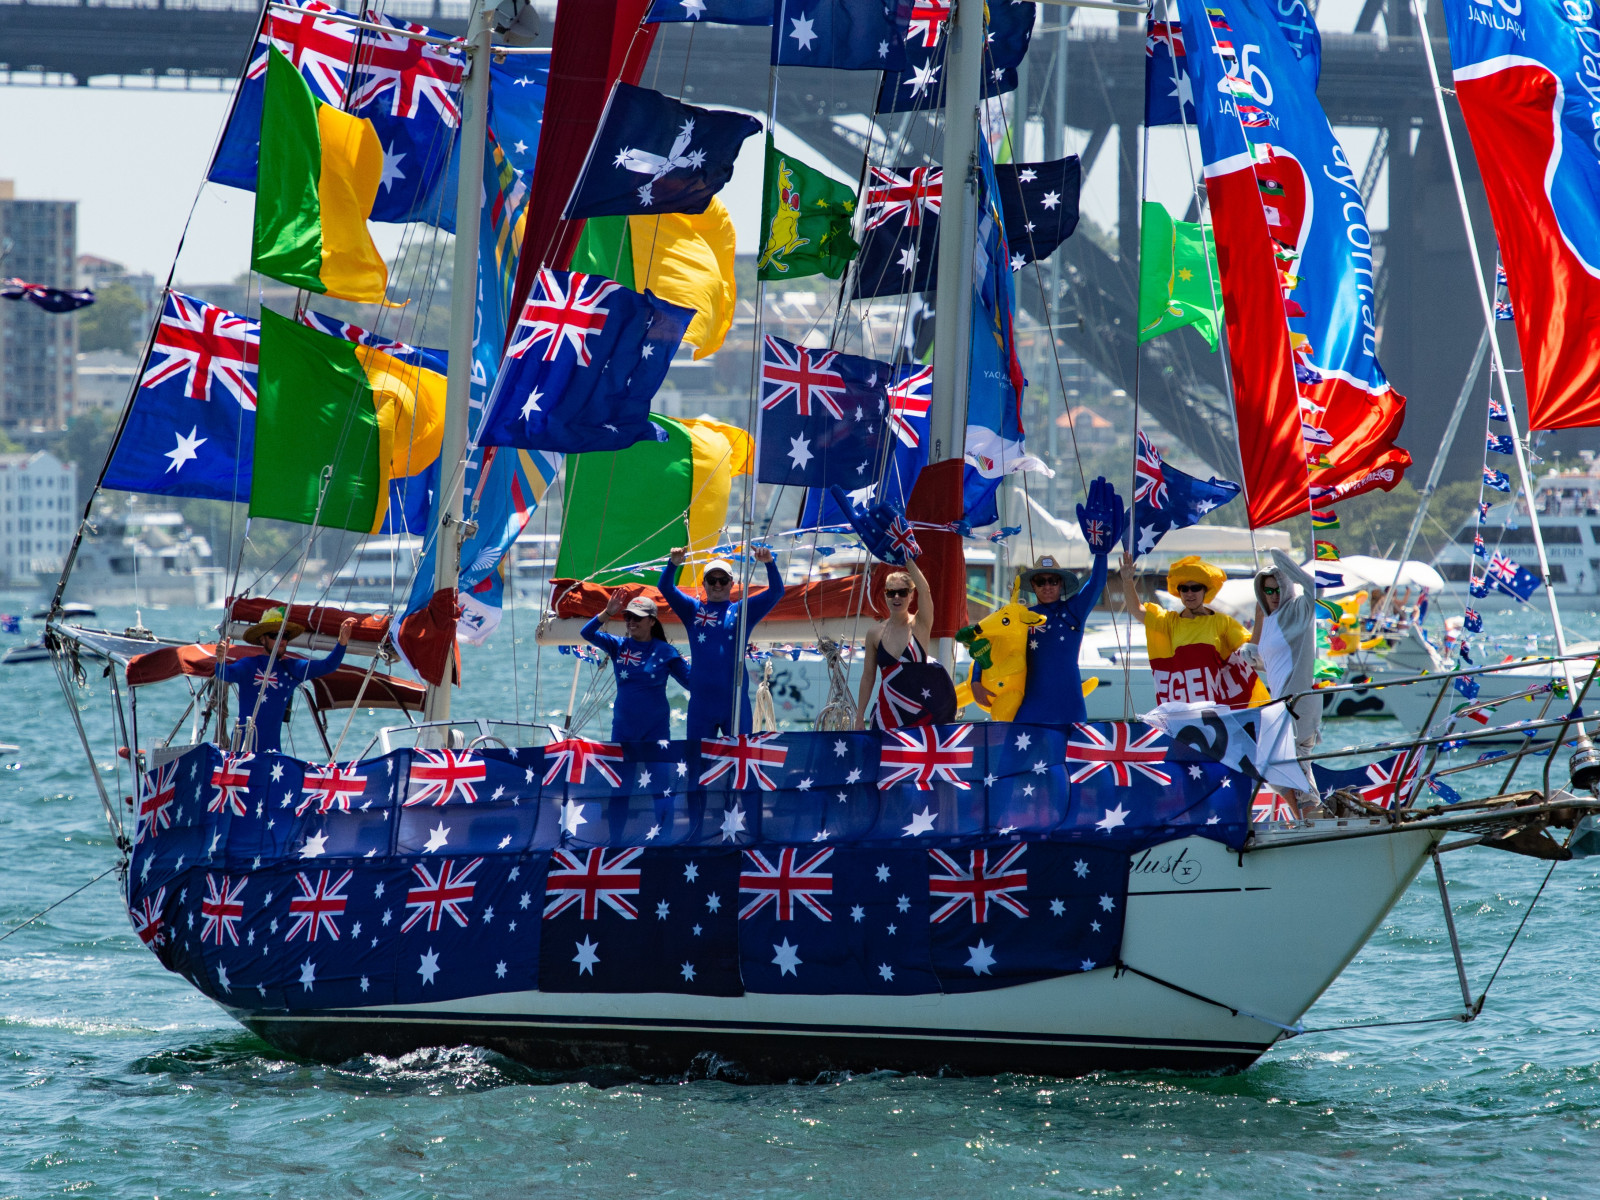 Wanderlust V won the Going Overboard Award at the Australia Day Harbour Parade 2019